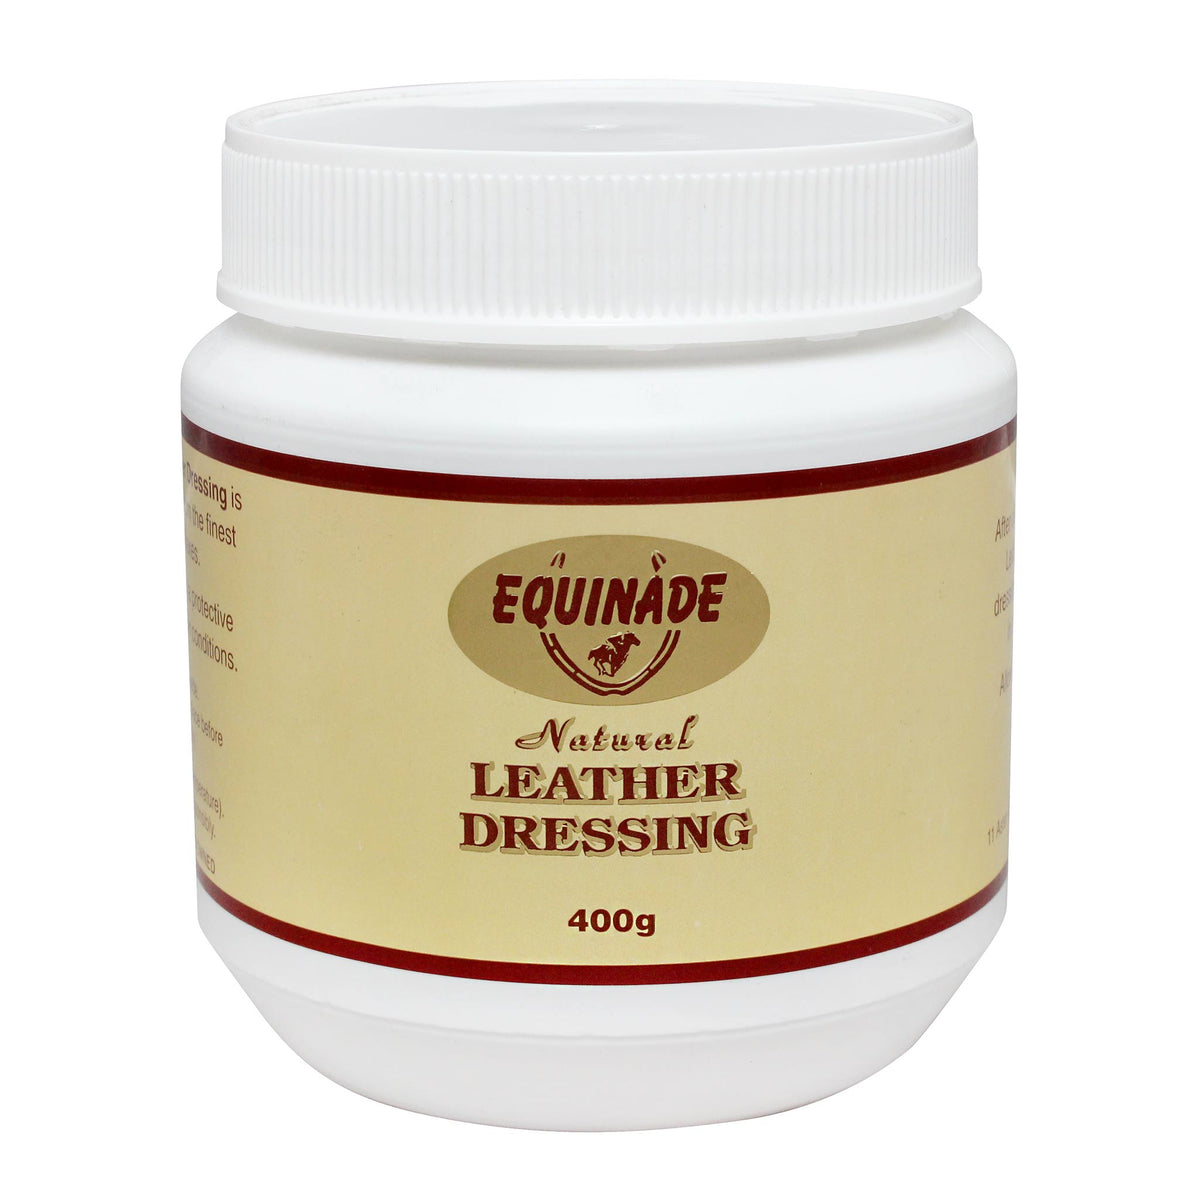 Equinade Natural Leather Dressing